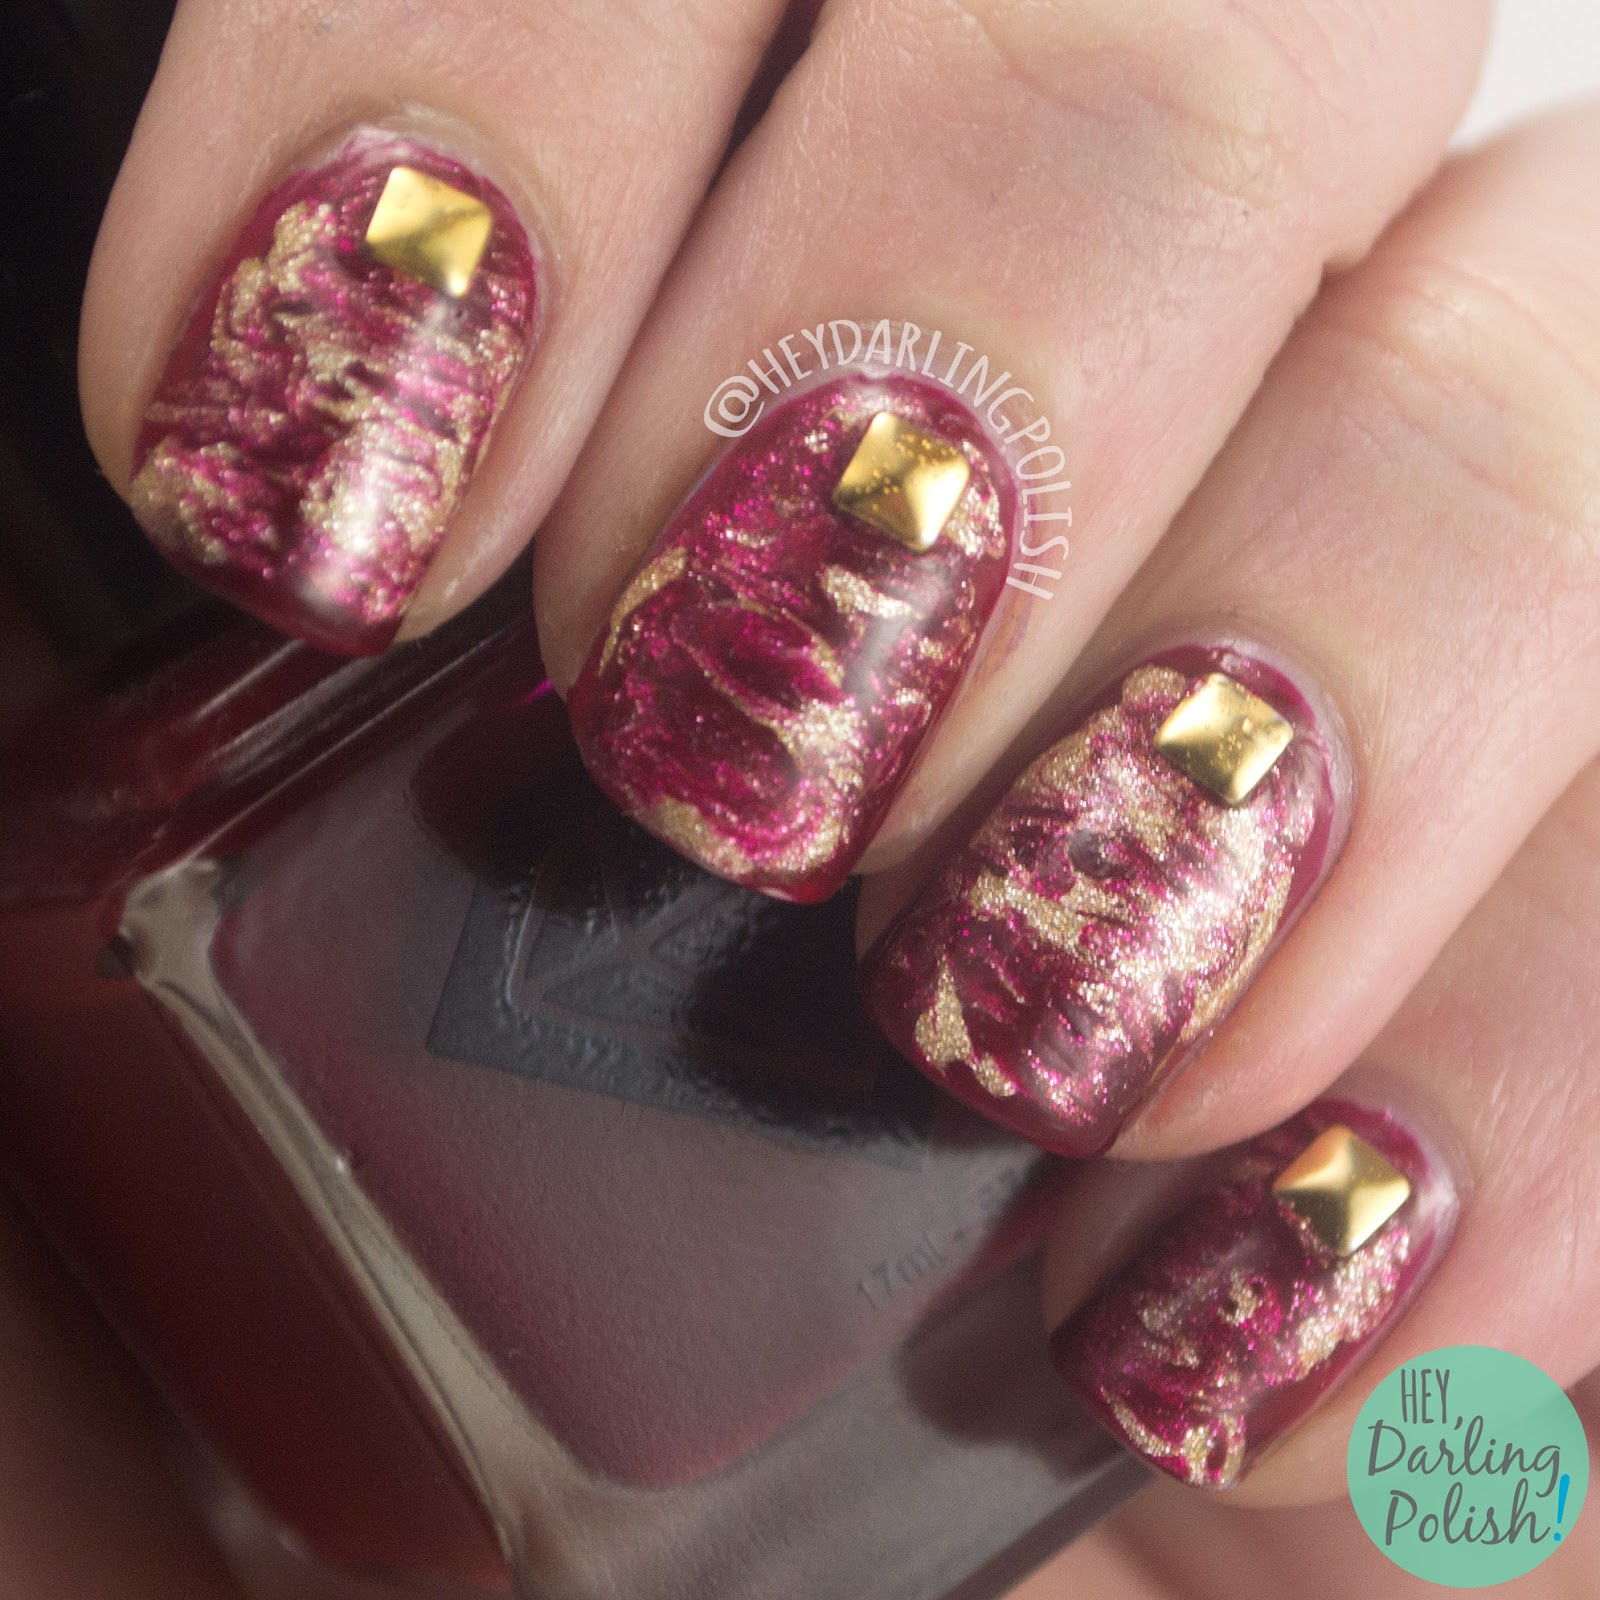 nails, nail art, nail polish, red, gold, needle drag, studs, hey darling polish, 52 week challenge